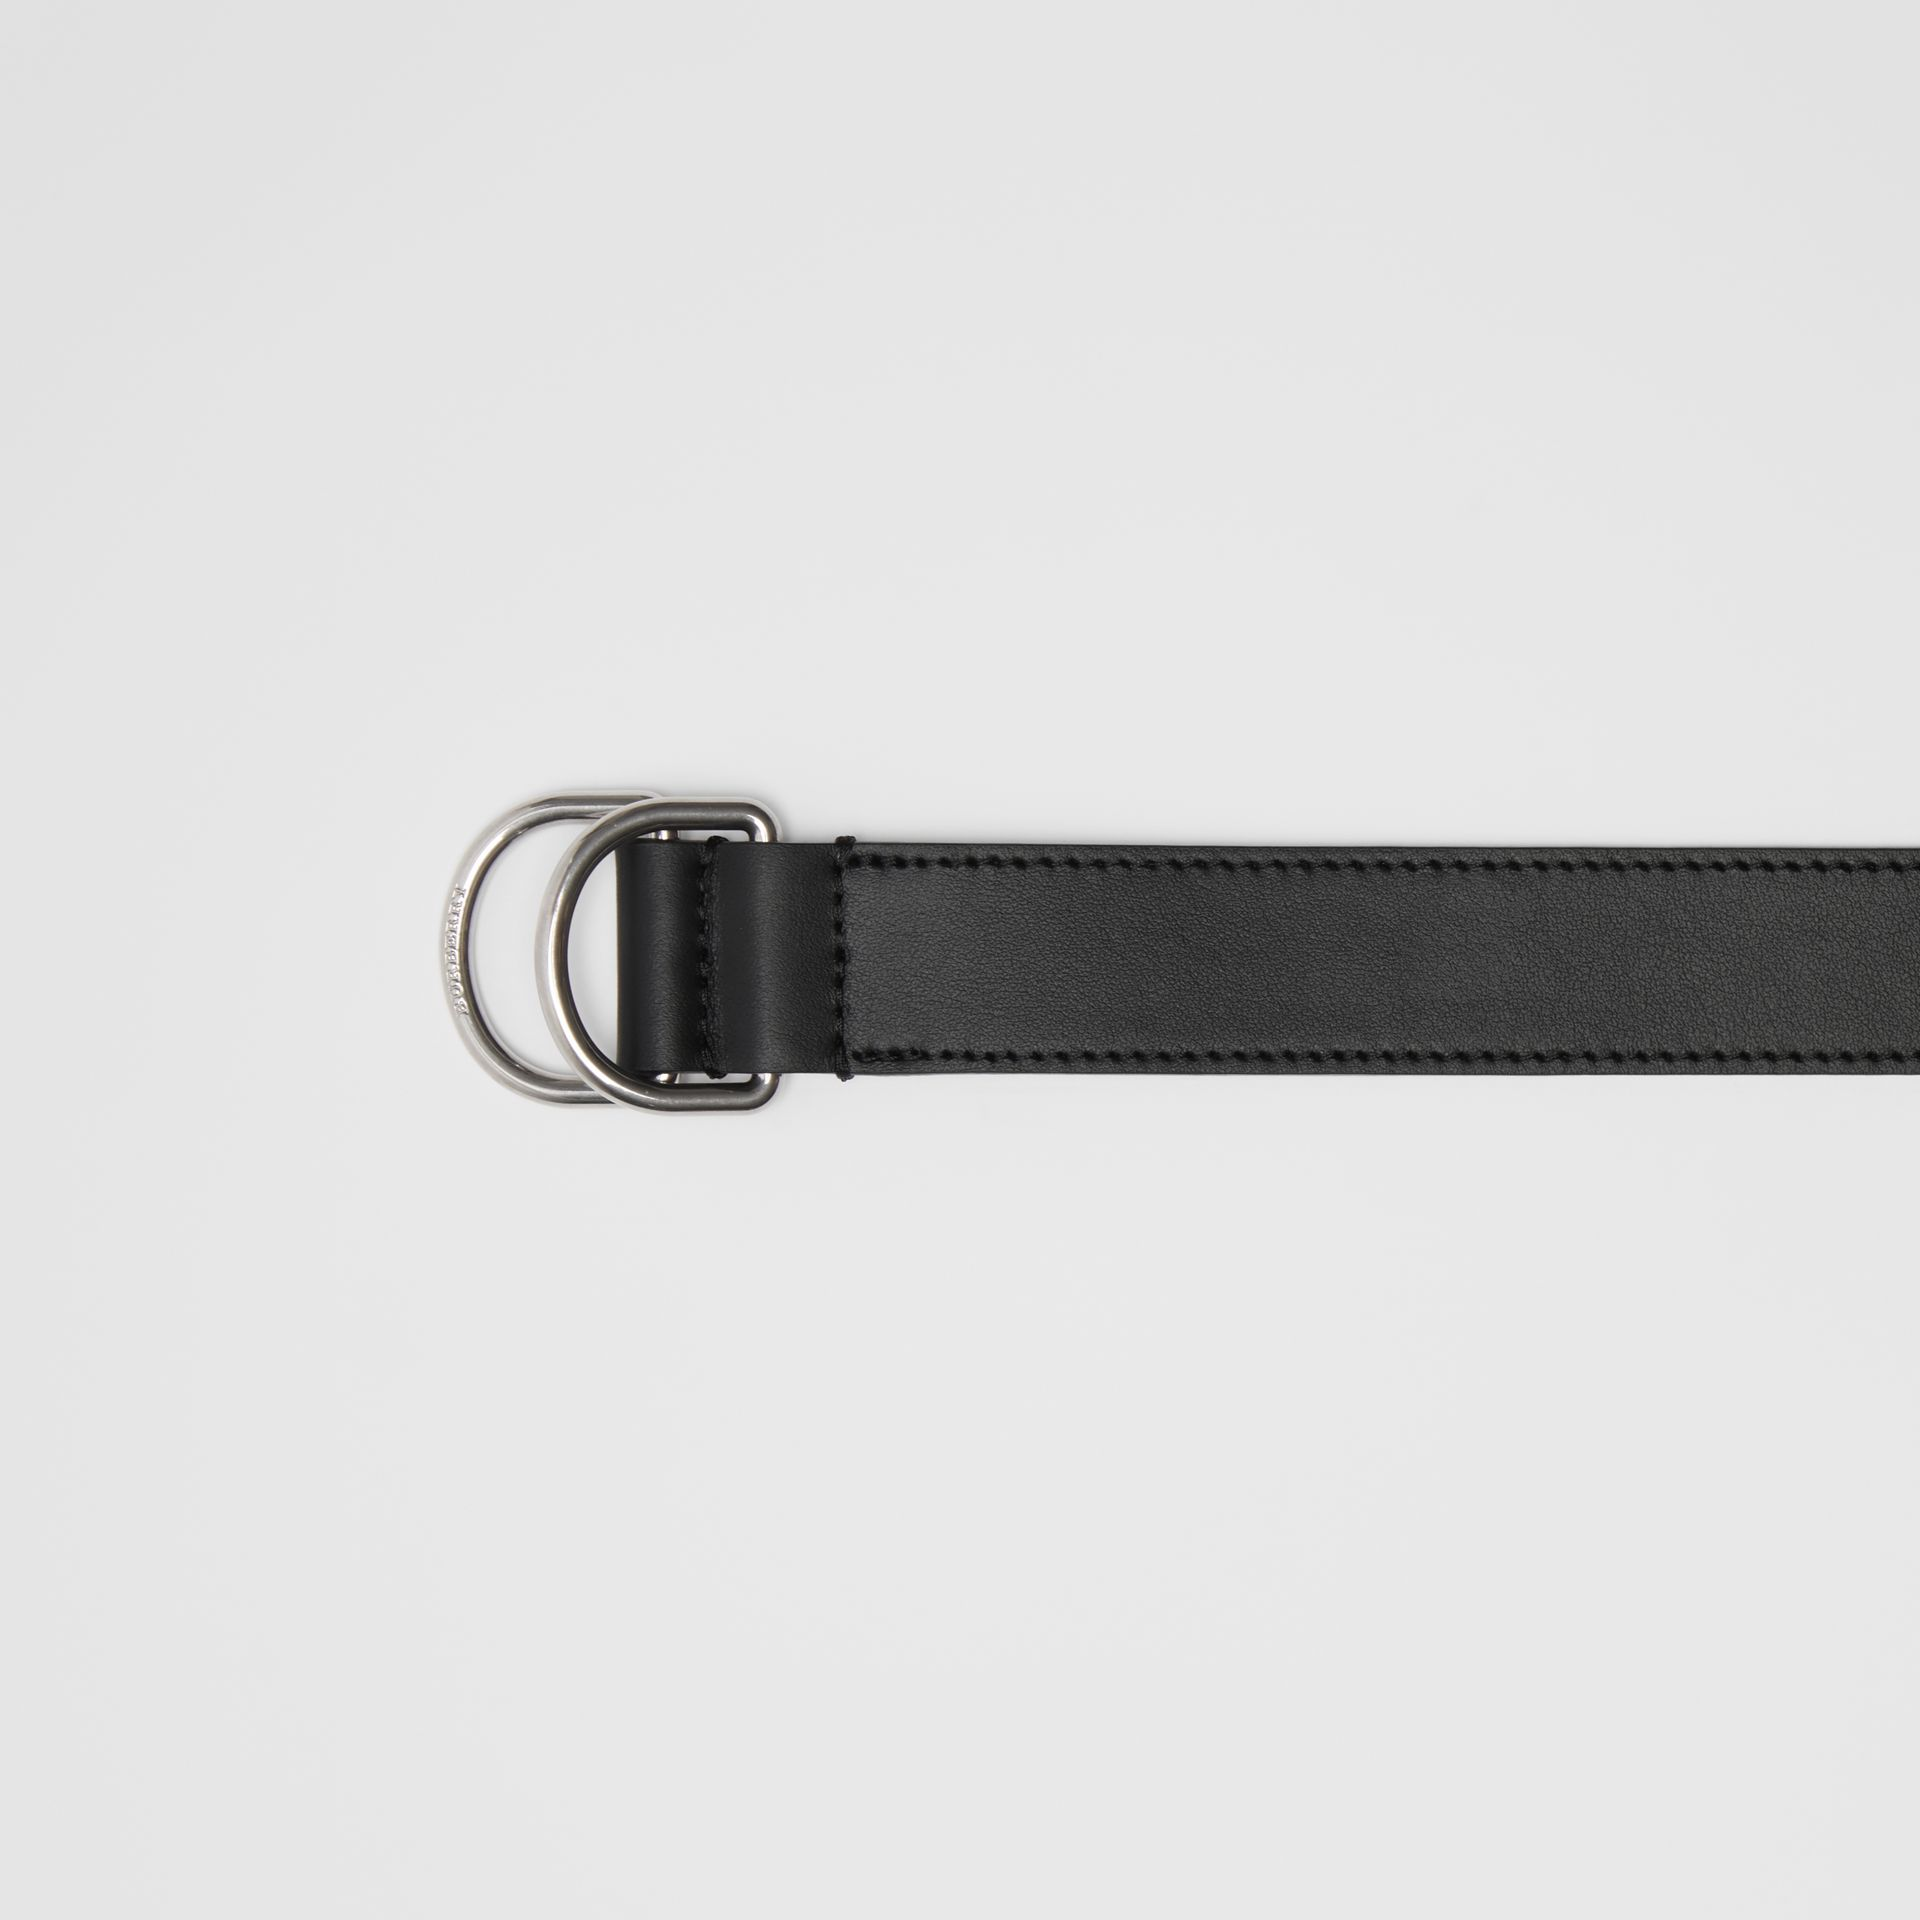 Leather Double D-ring Belt in Black - Men | Burberry United Kingdom - gallery image 1